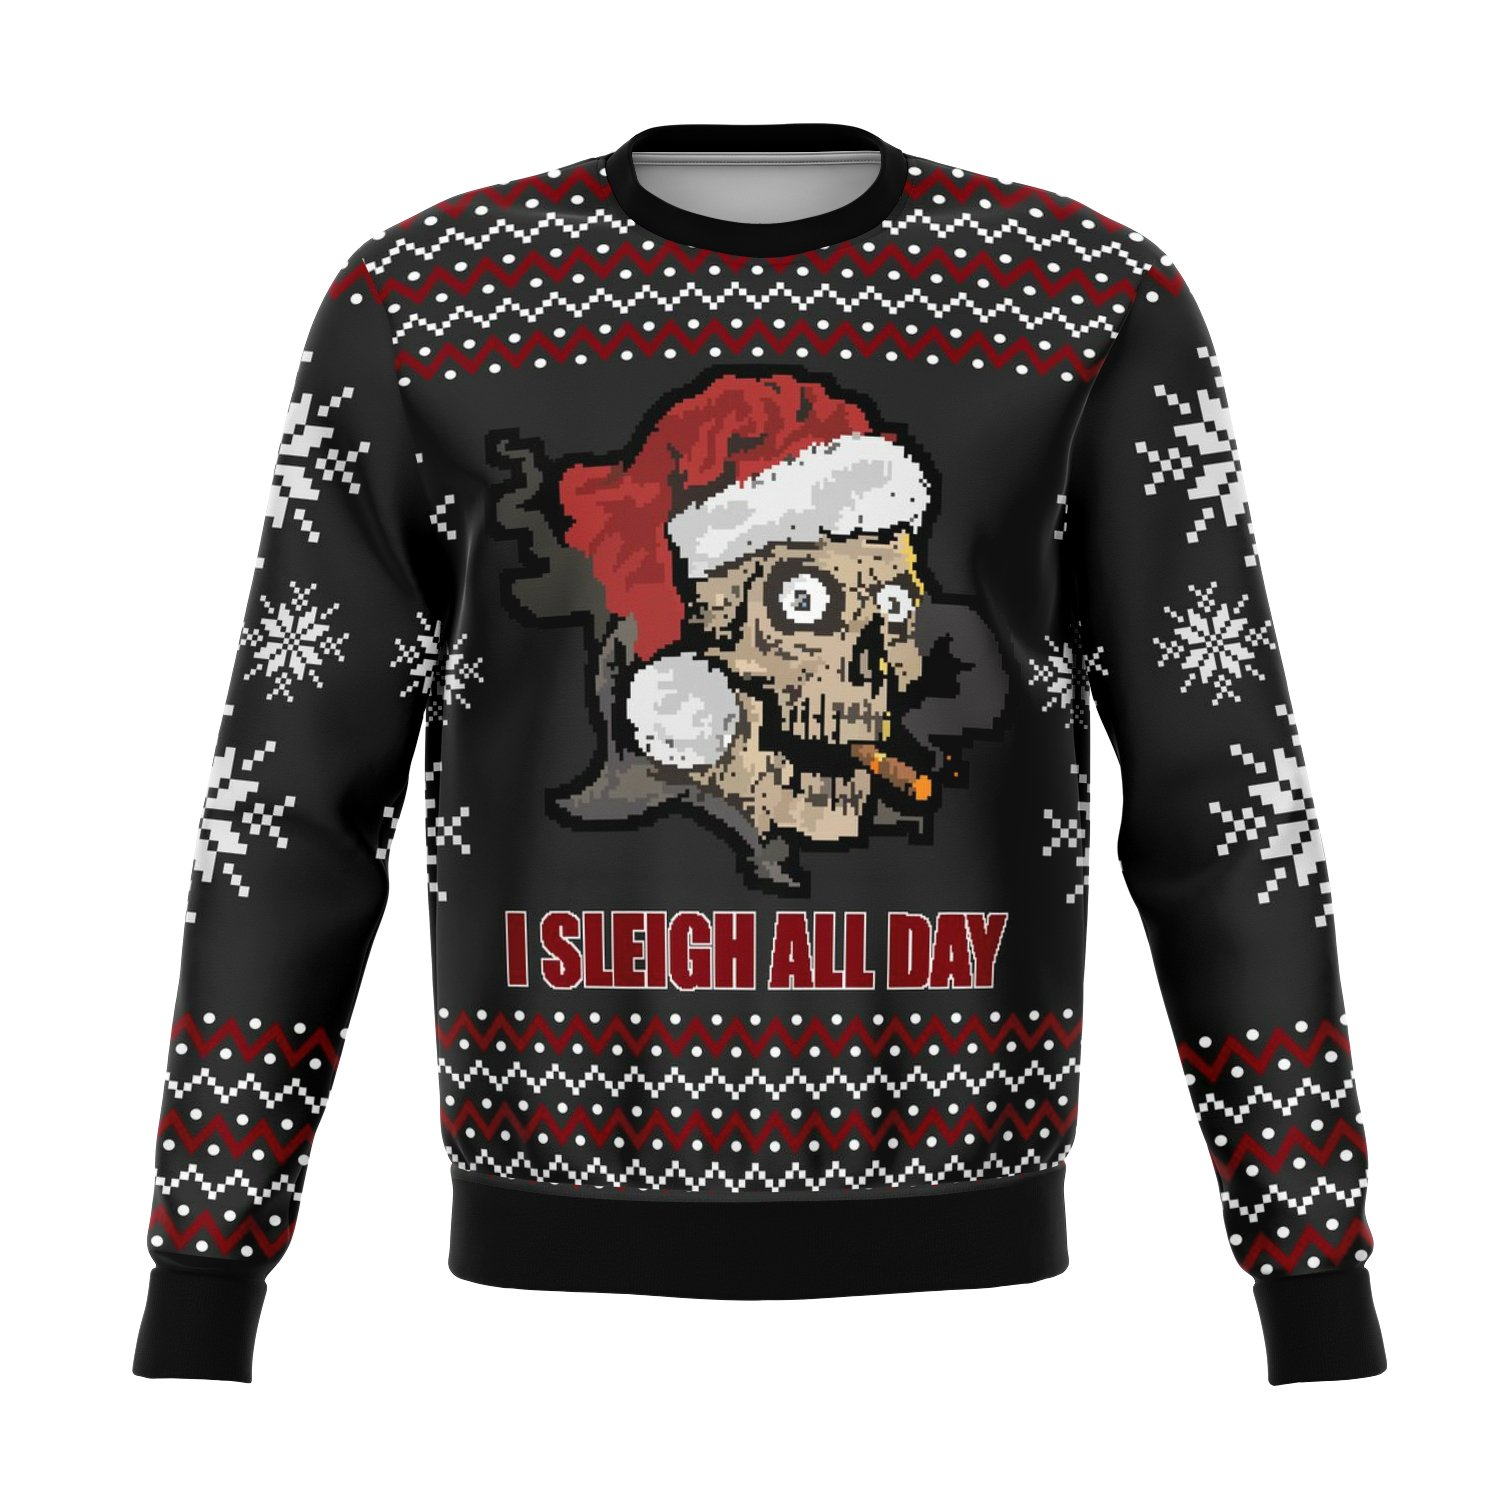 Sleigh All Day Funny Ugly Sweater